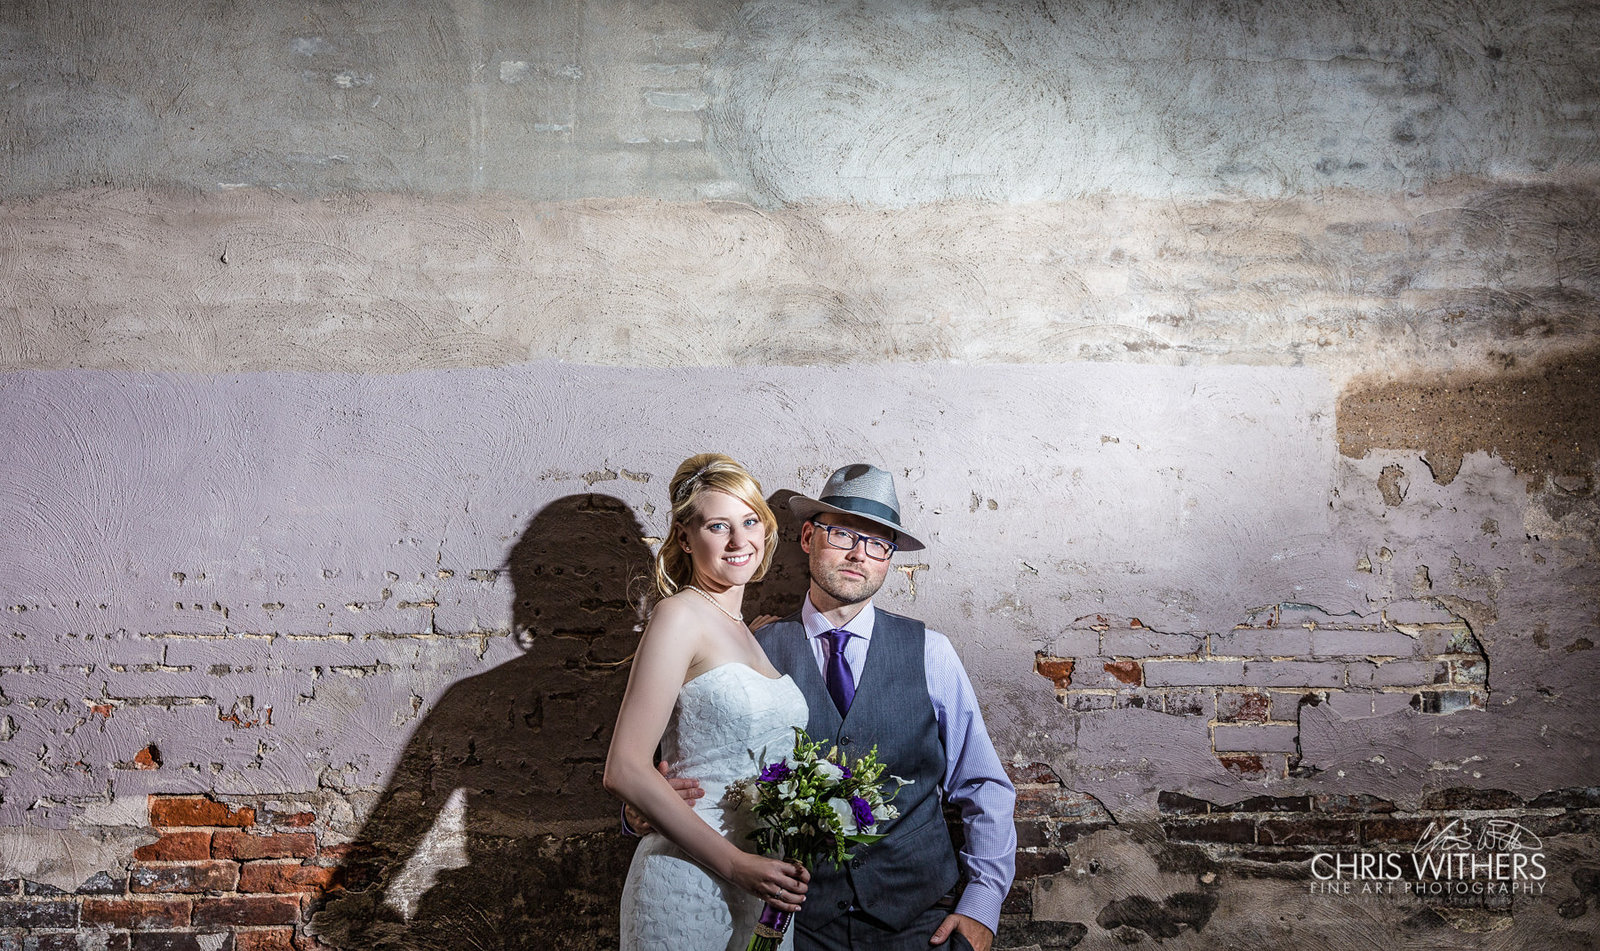 Springfield Illinois Wedding Photographer - Chris Withers Photography (34 of 159)